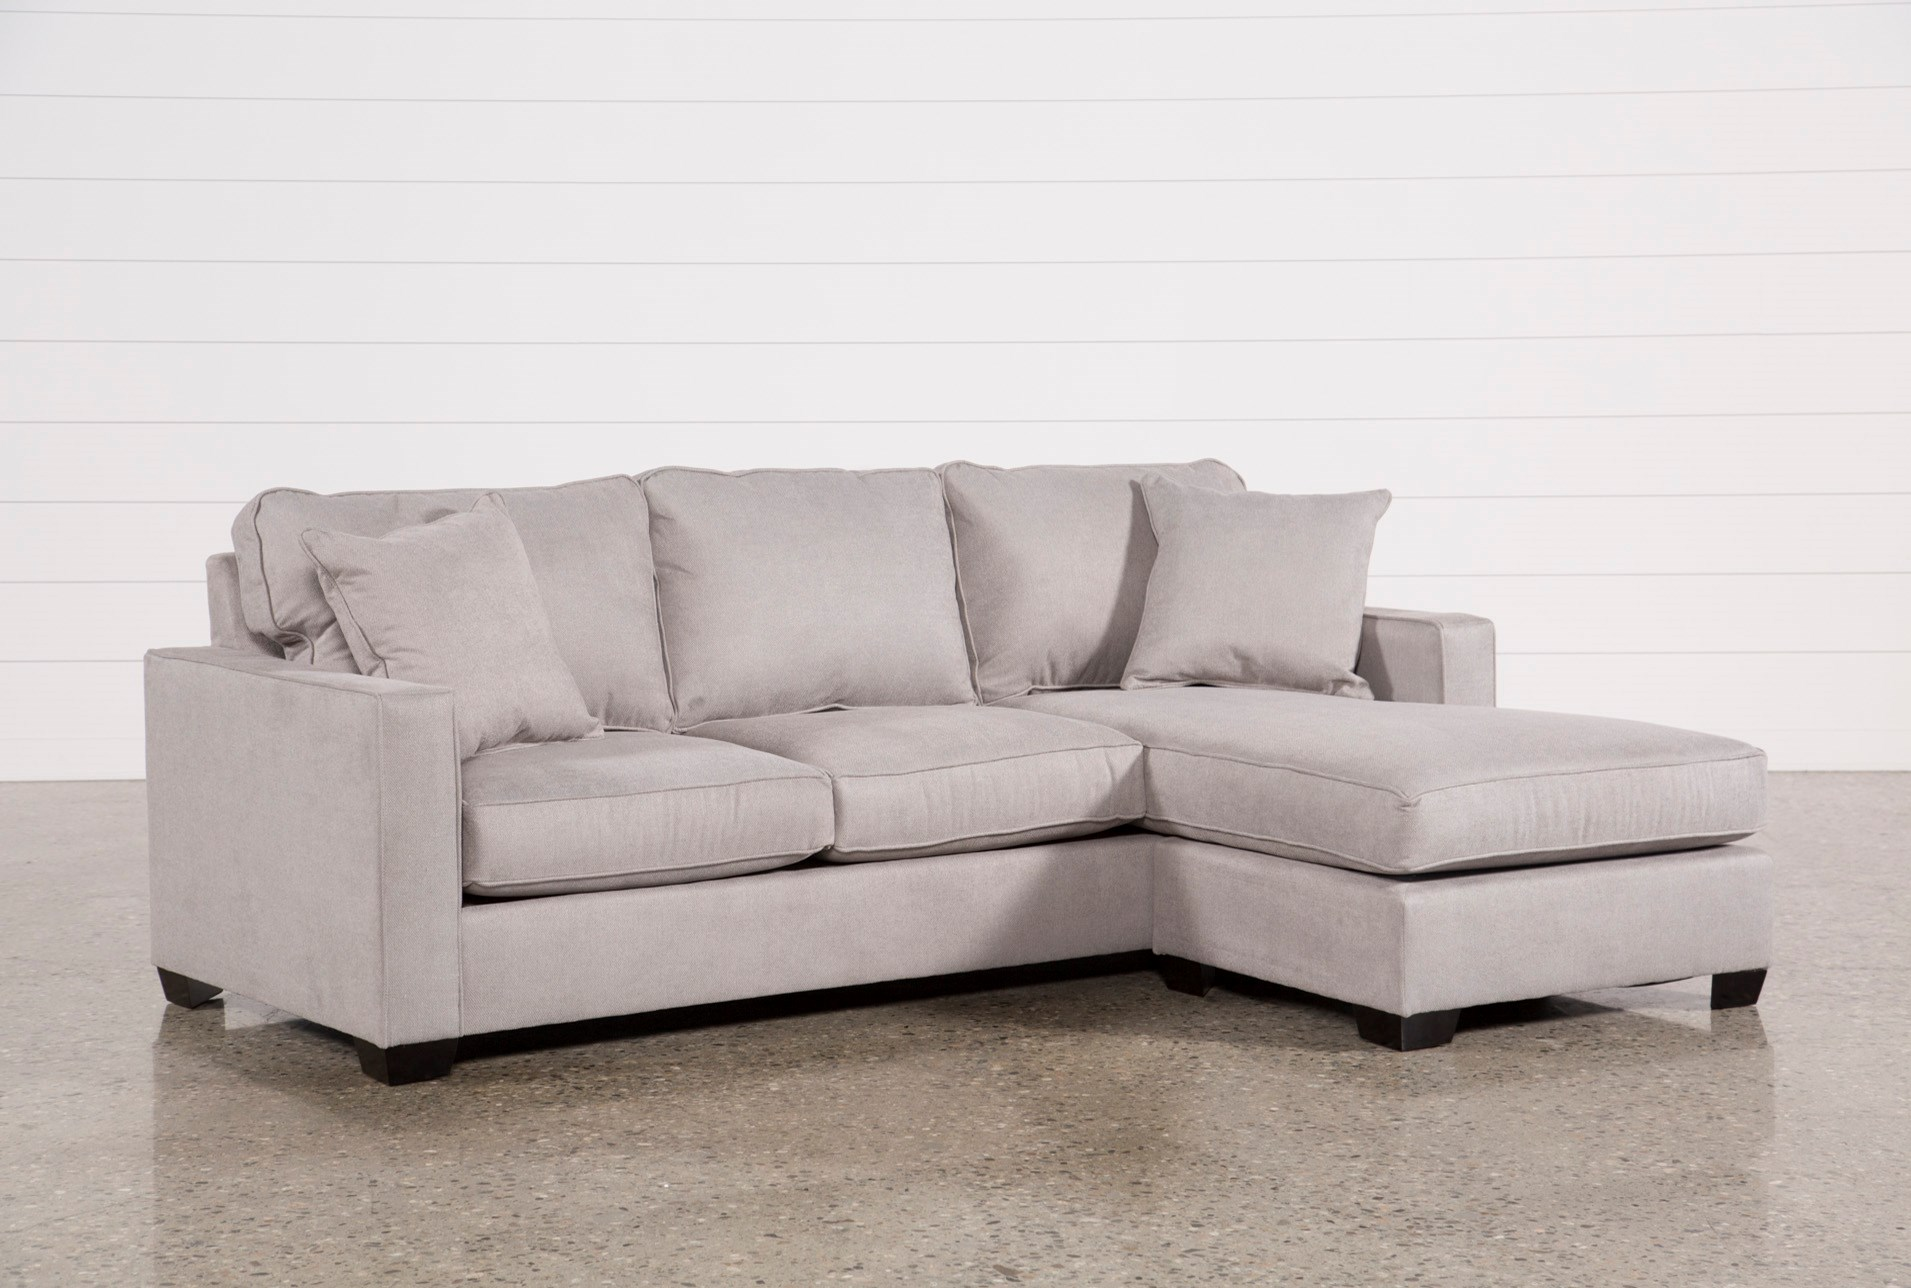 Reversible Sofa Eddy Reversible Sectional Large Thesofa